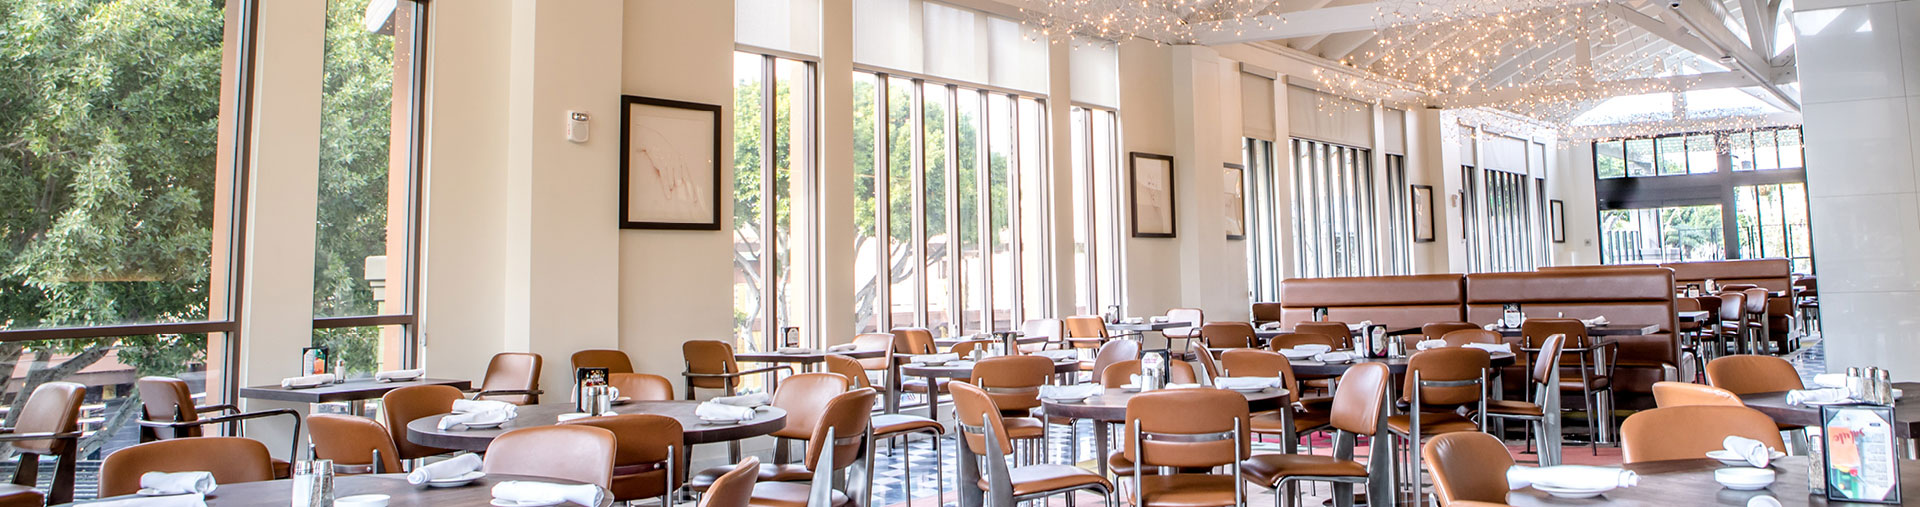 Naples Ristorante E Bar restaurant buyout private event space in Anaheim, CA